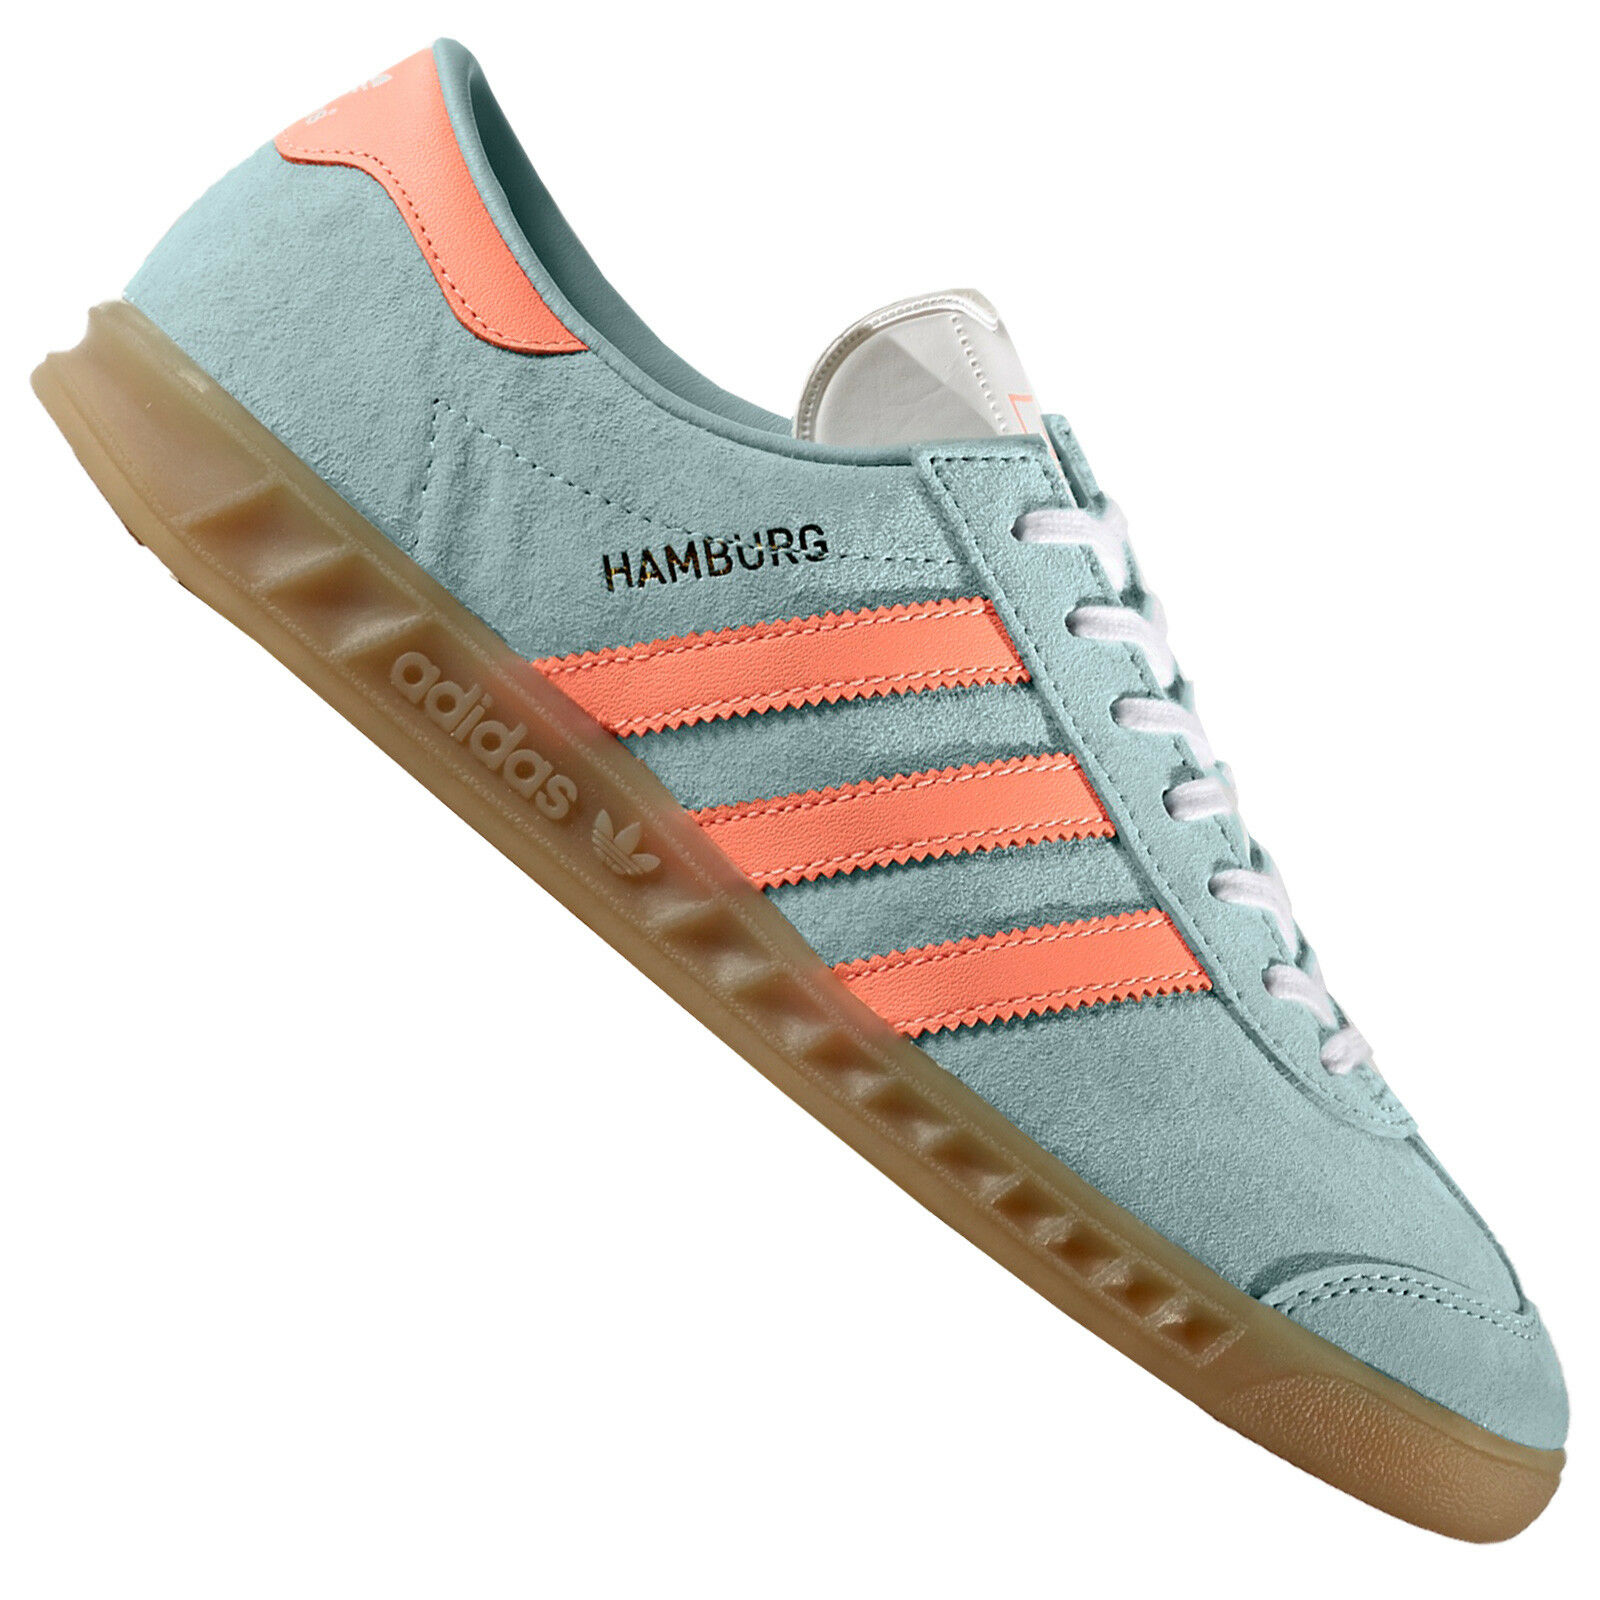 Adidas Originals Hamburg Women's Sneakers Leather Trainers BB5111 Turquoise